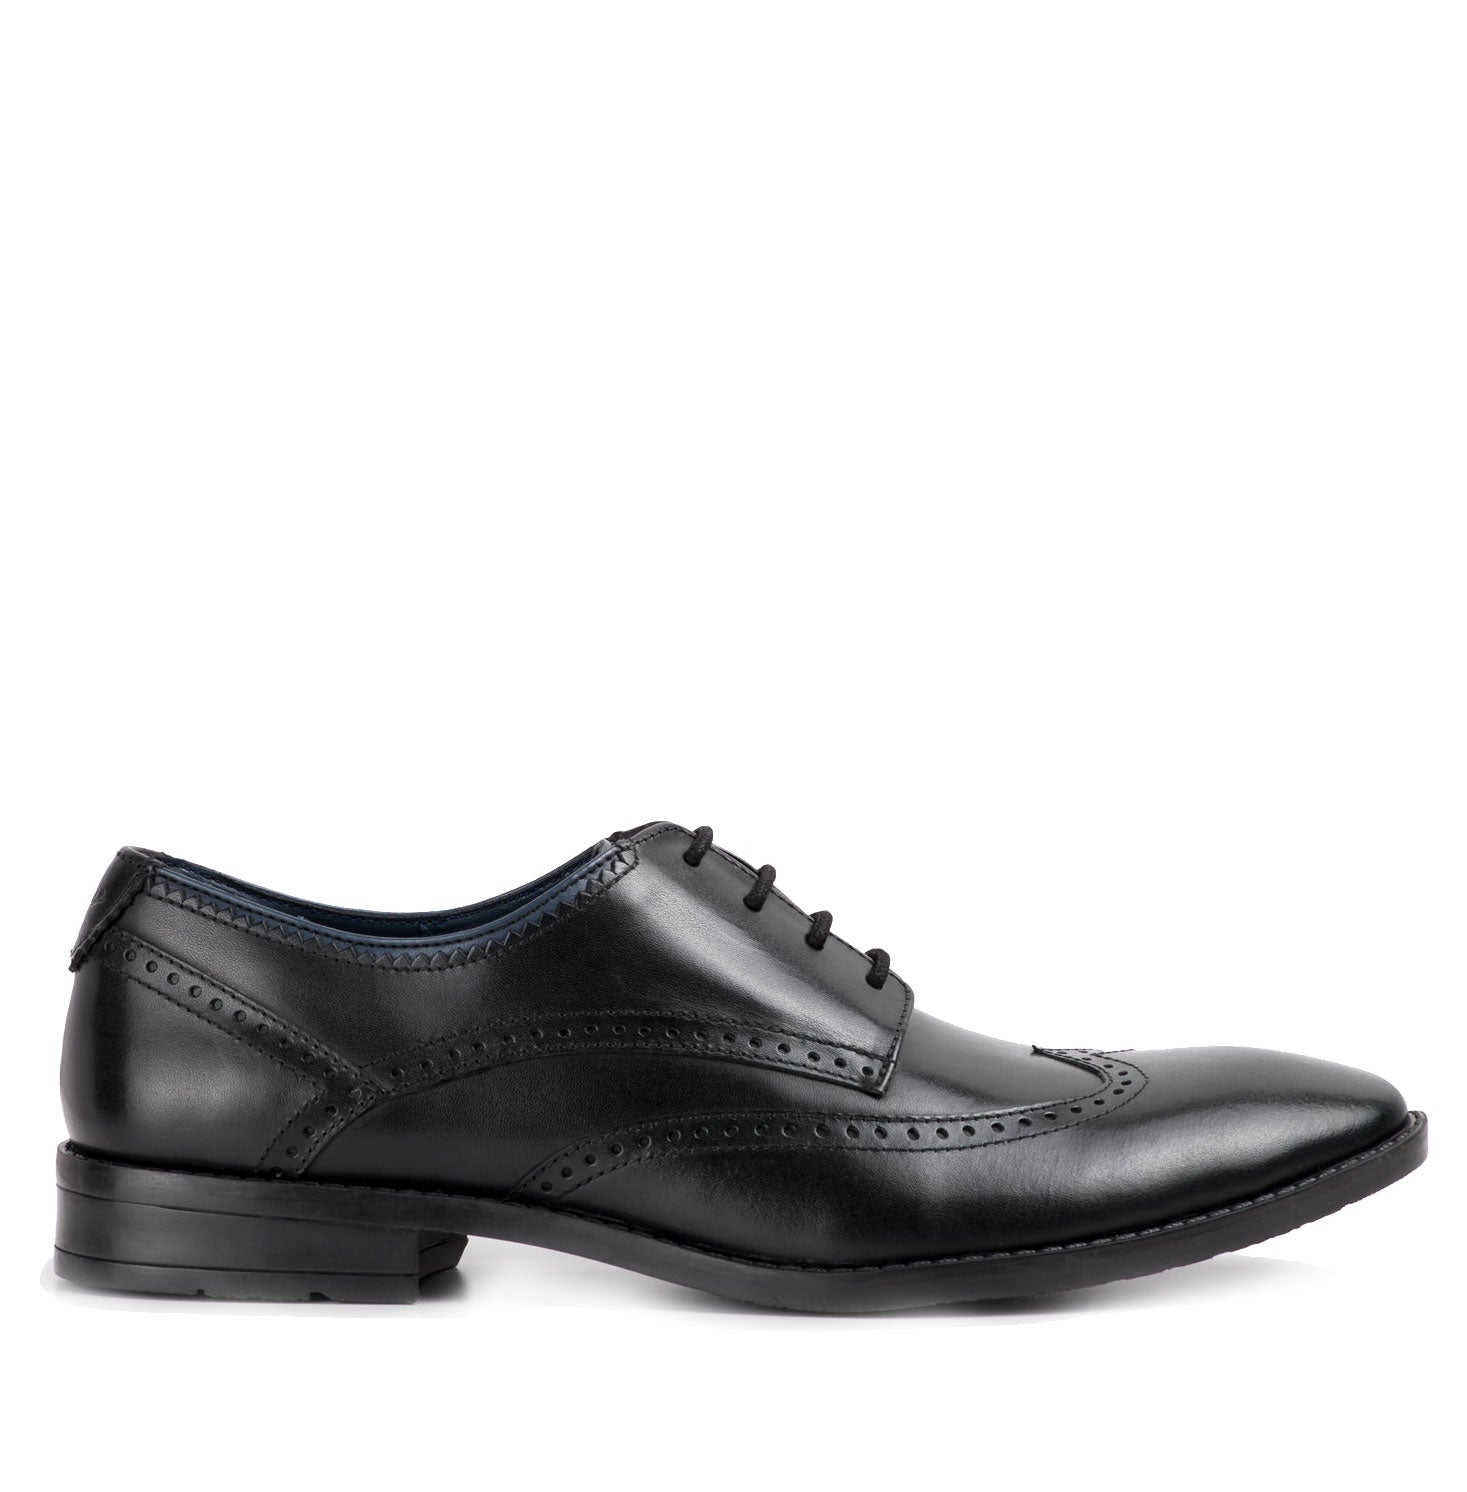 Goodwin Smith Aubyn Oxford Brogue Shoe | Black